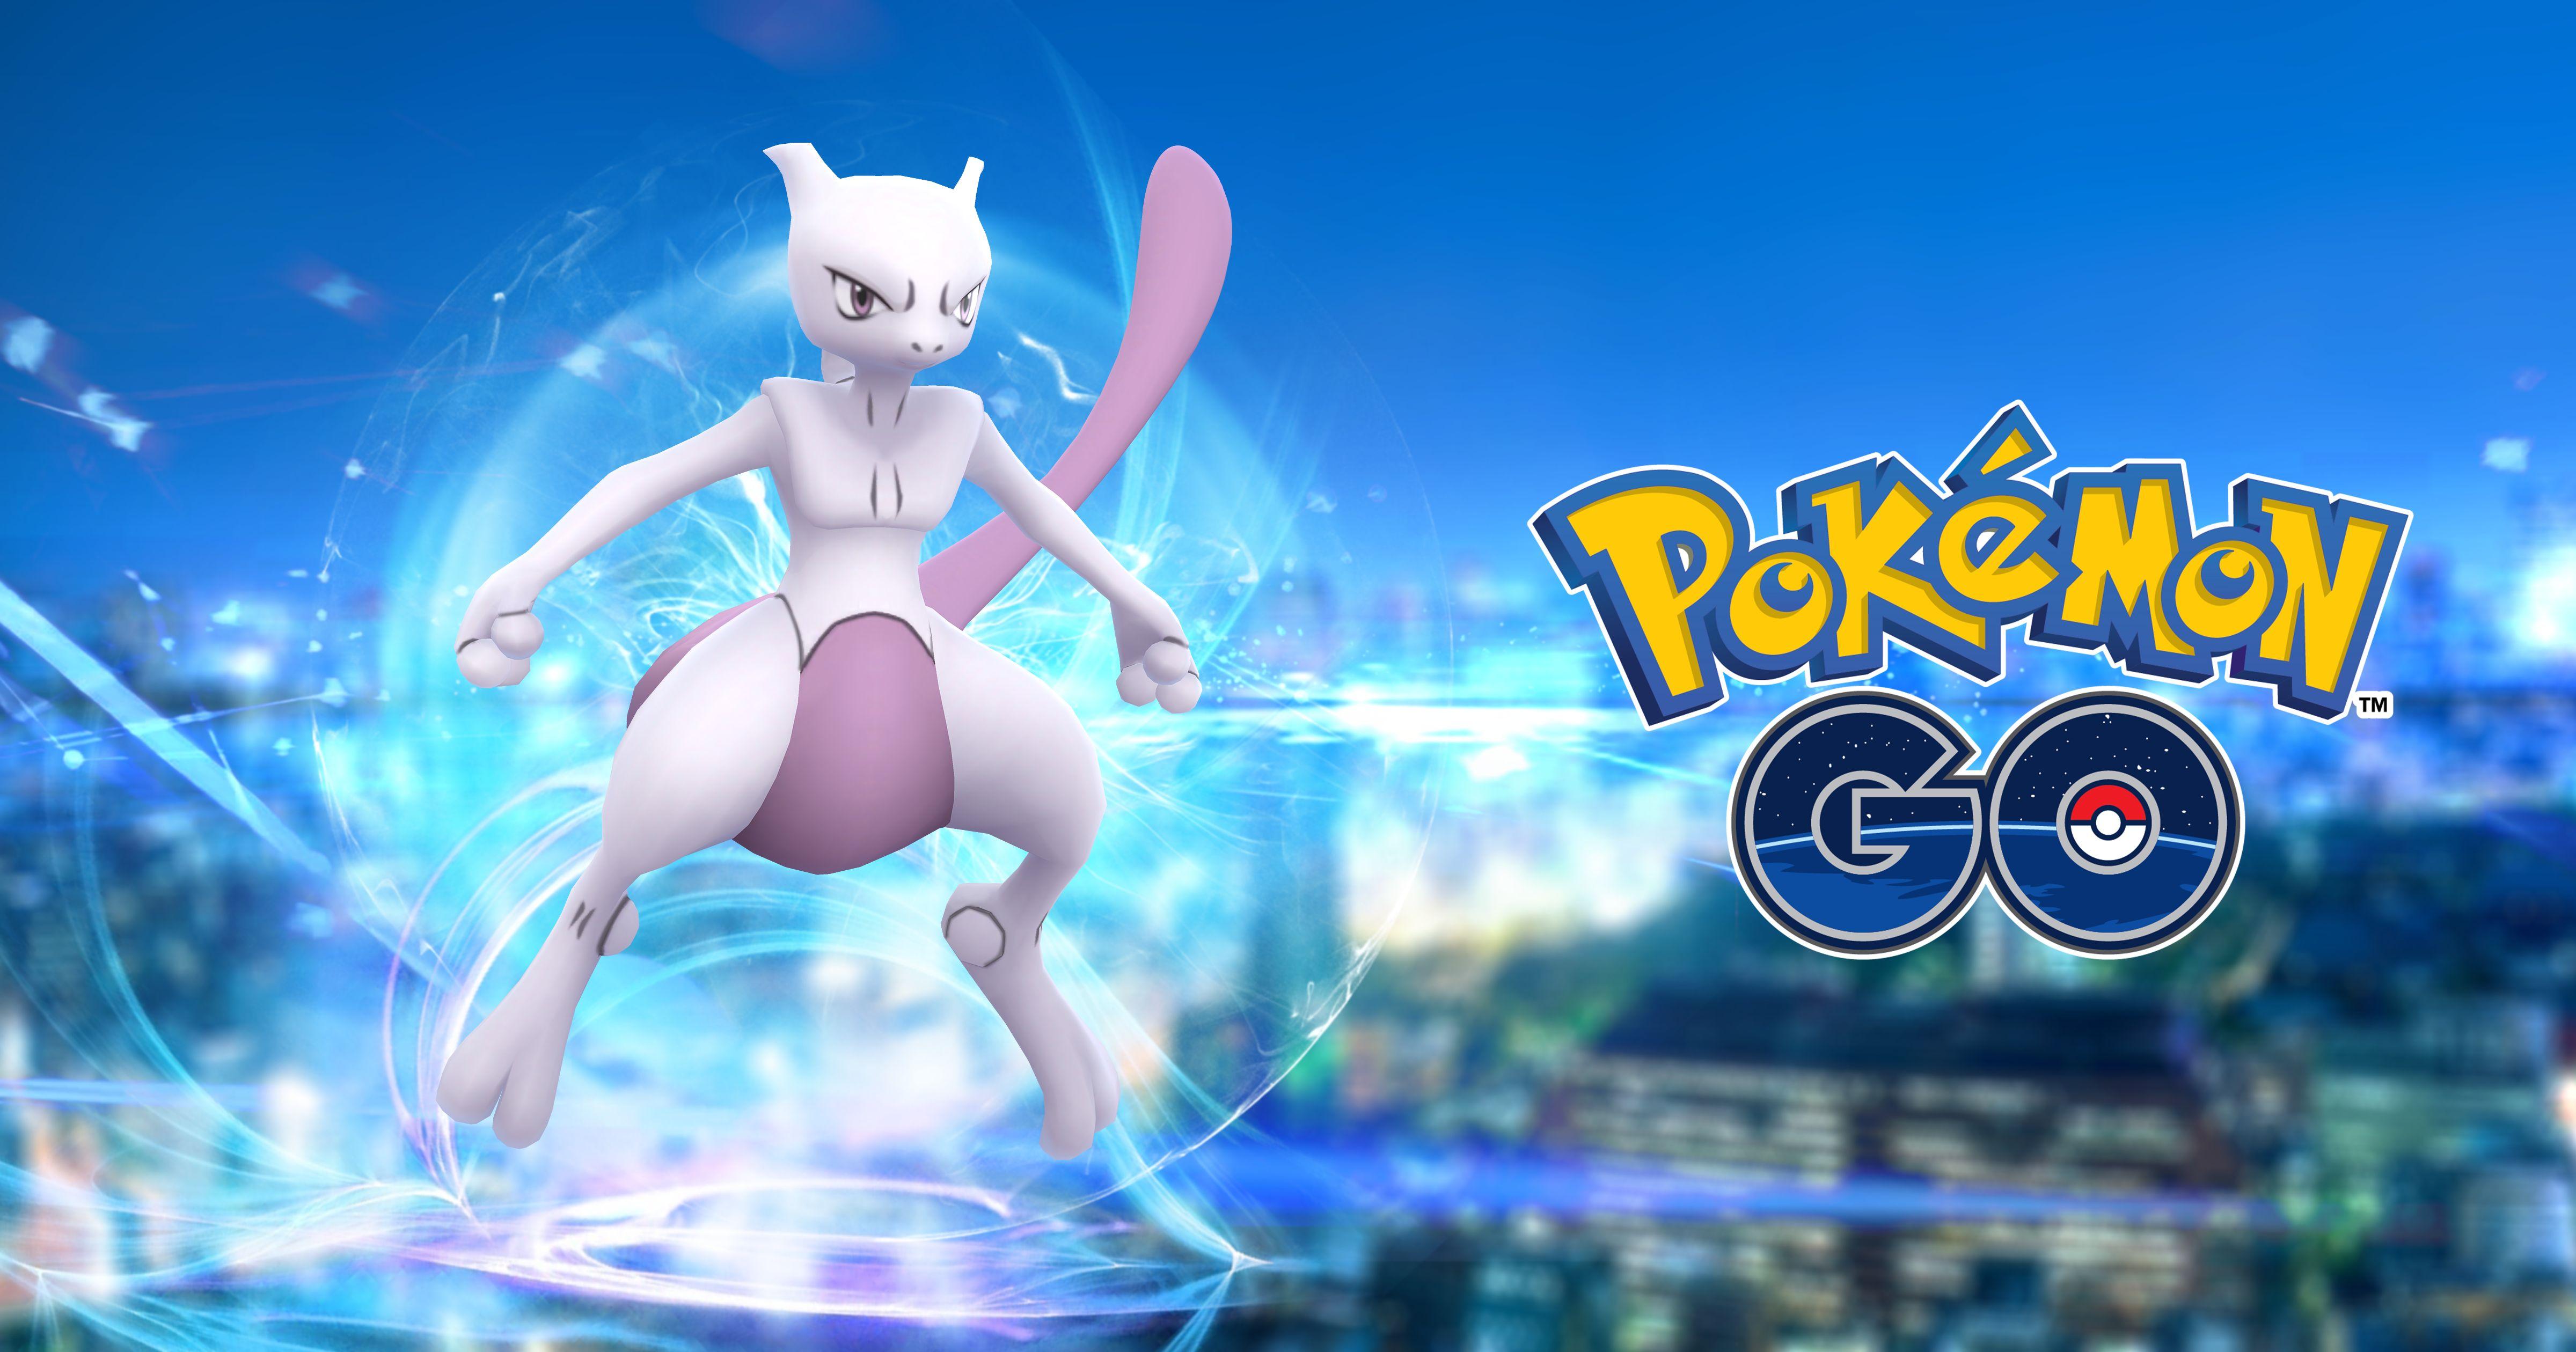 Pokémon Go – Achieved 35% Growth This Summer In Mobile Games